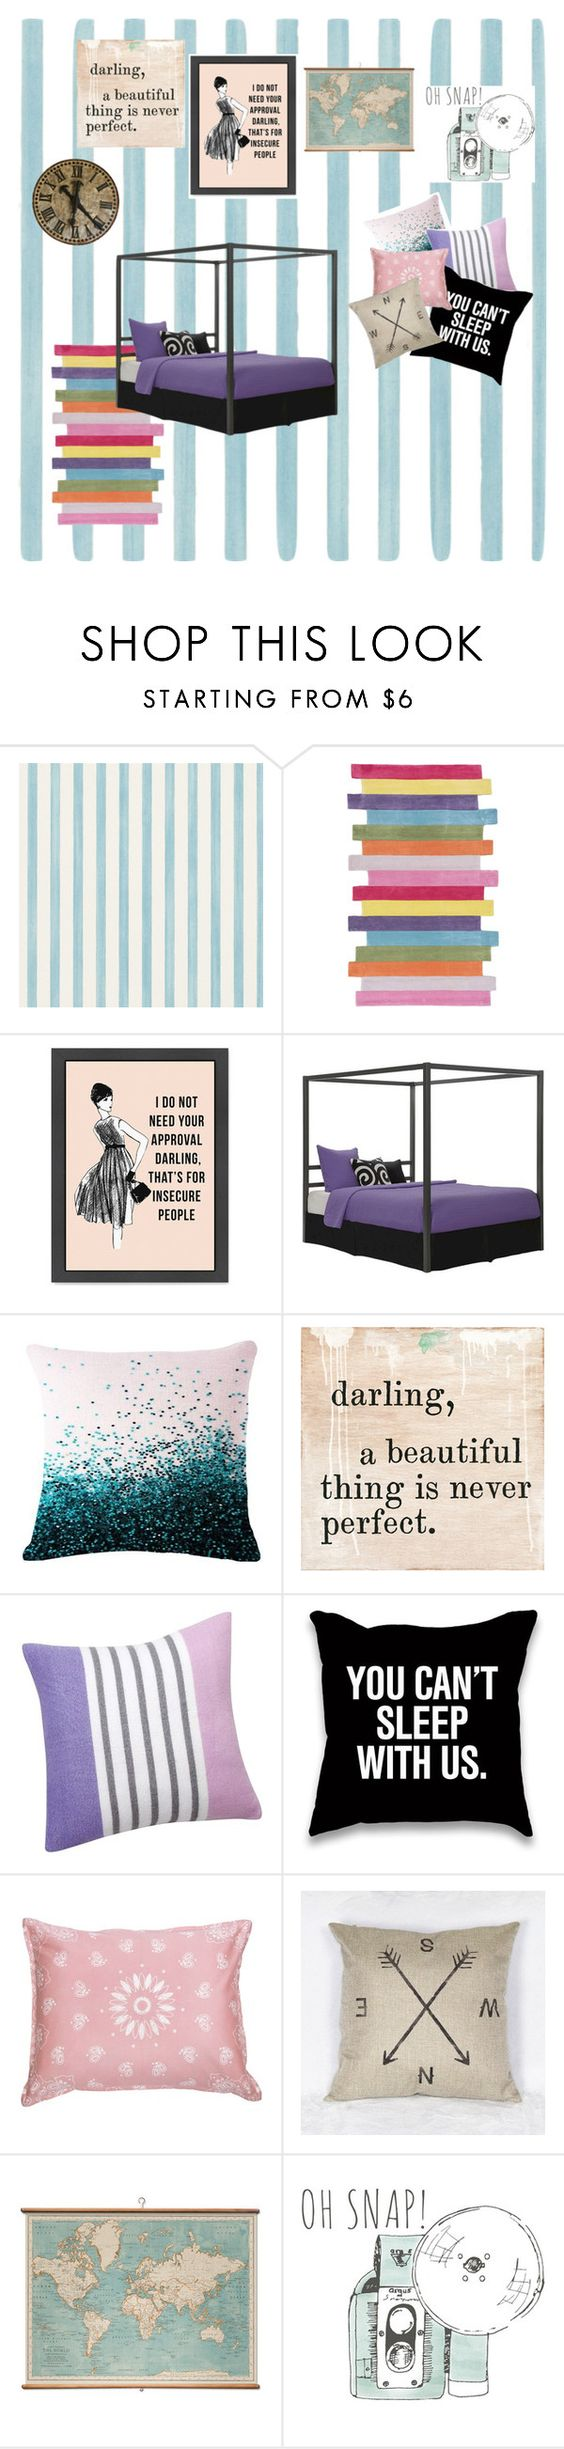 """Drafting"" by ashyrosepetal on Polyvore featuring interior, interiors, interior design, home, home decor, interior decorating, Christian Lacroix, nuLOOM, Dorel and Sugarboo Designs"